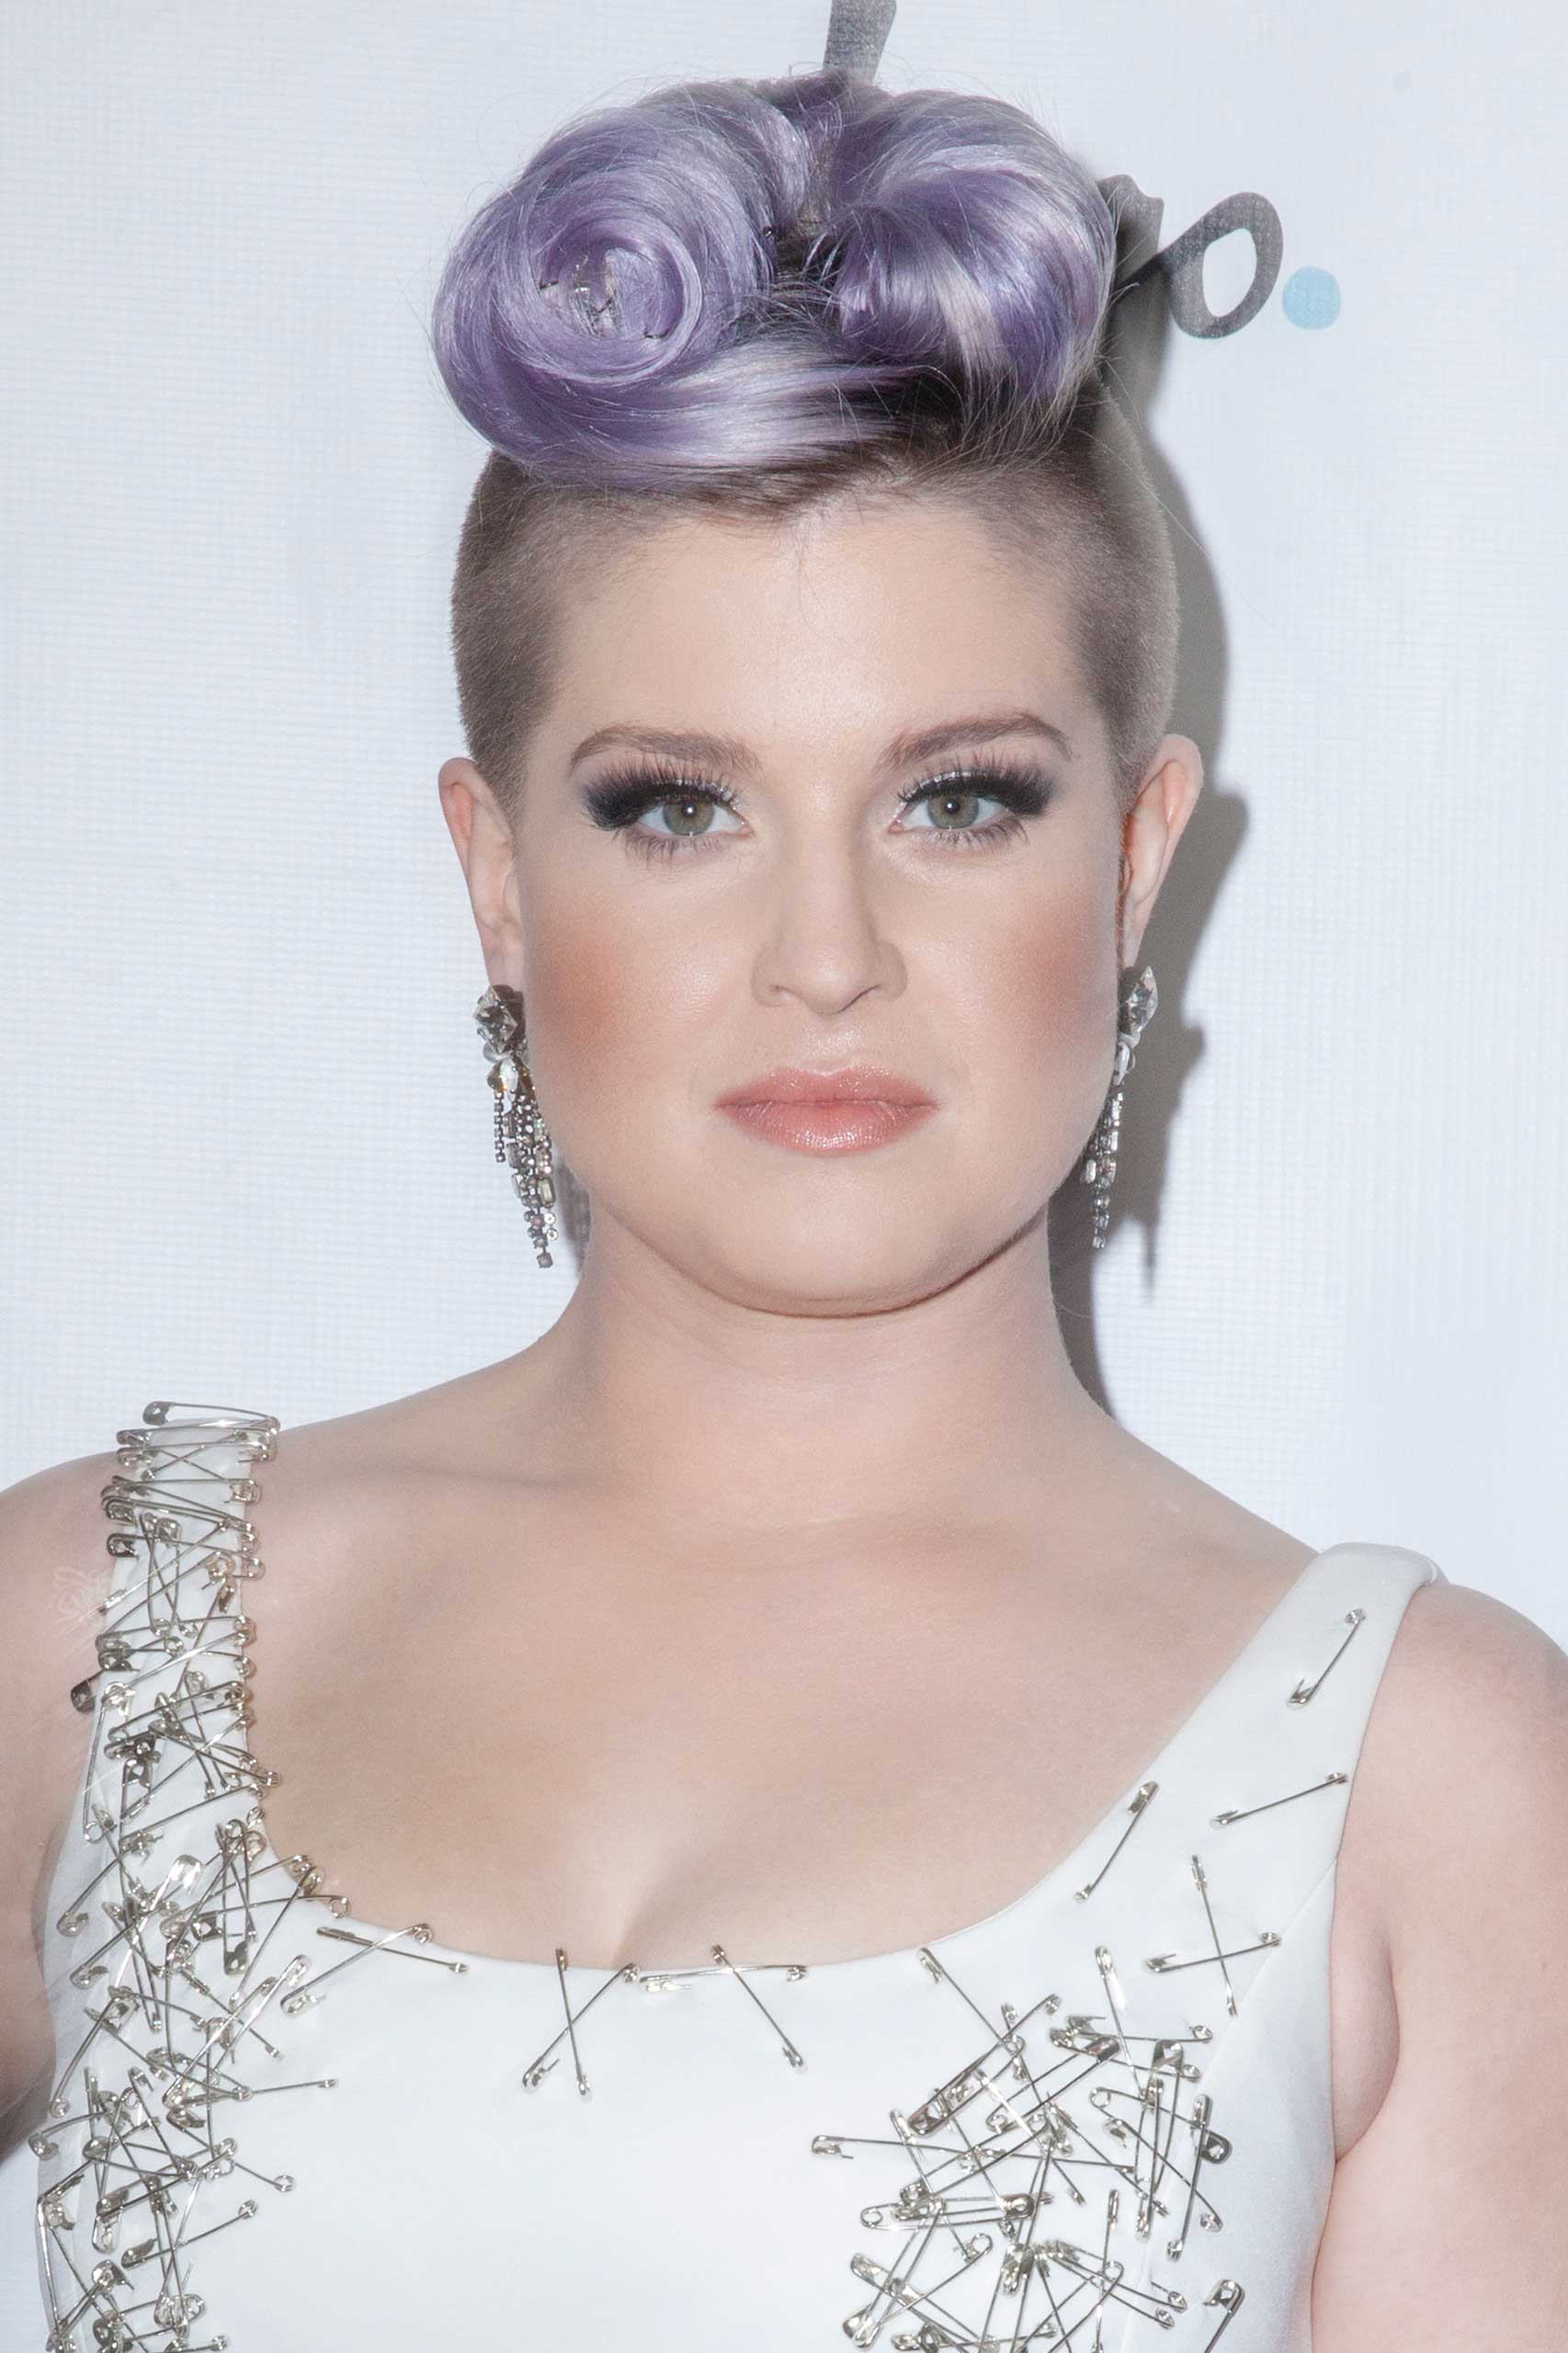 Kelly Osbourne attends Logo TV's  Trailblazers  at the Cathedral of St. John the Divine on June 25, 2015 in New York City.